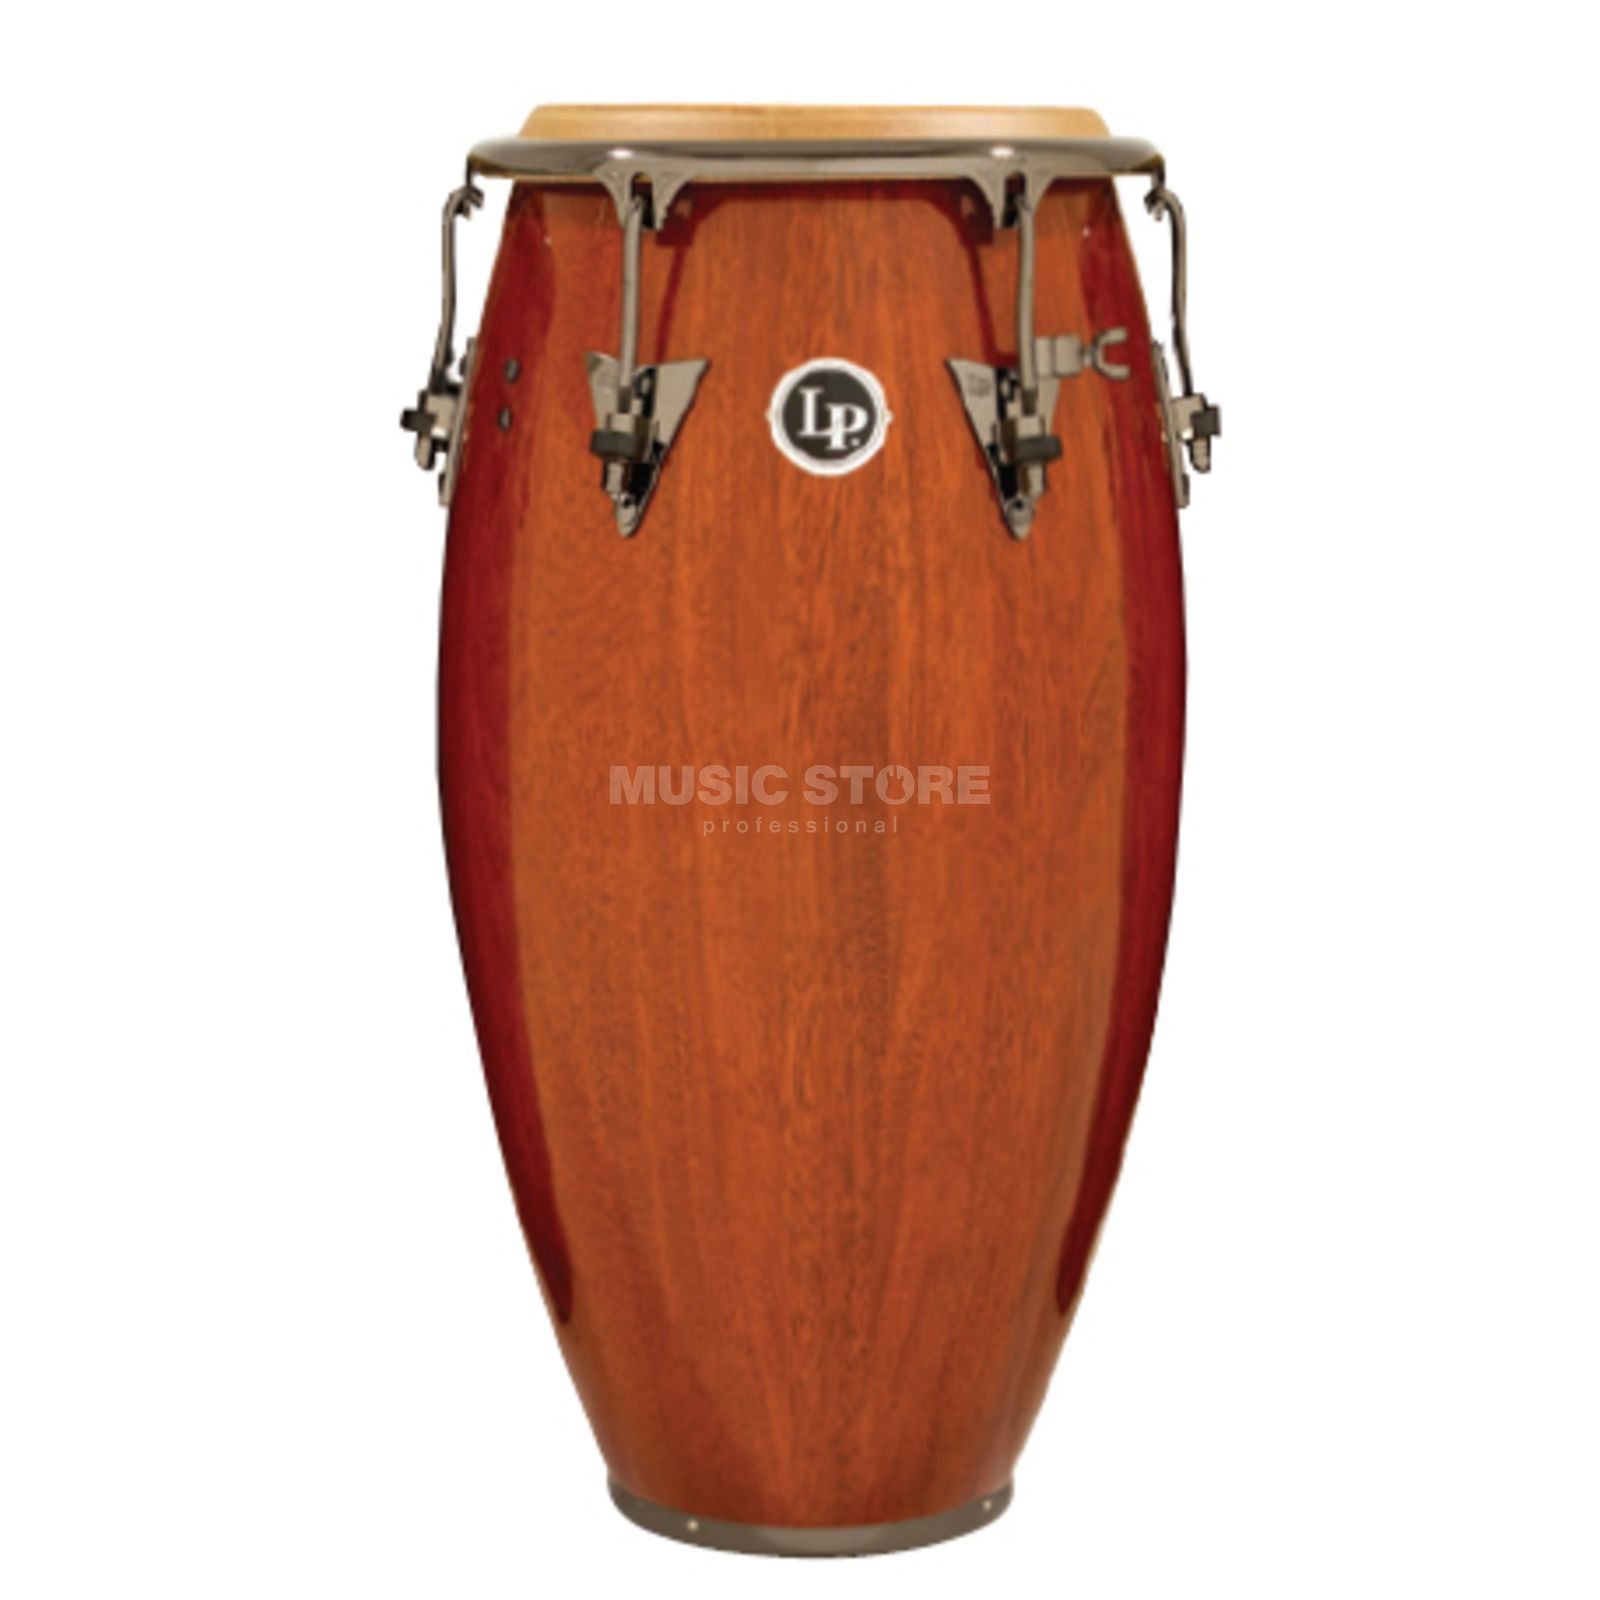 "Latin Percussion Classic Durian Conga LP559Z-D, 11-3/4"", Gloss Finish Produktbild"